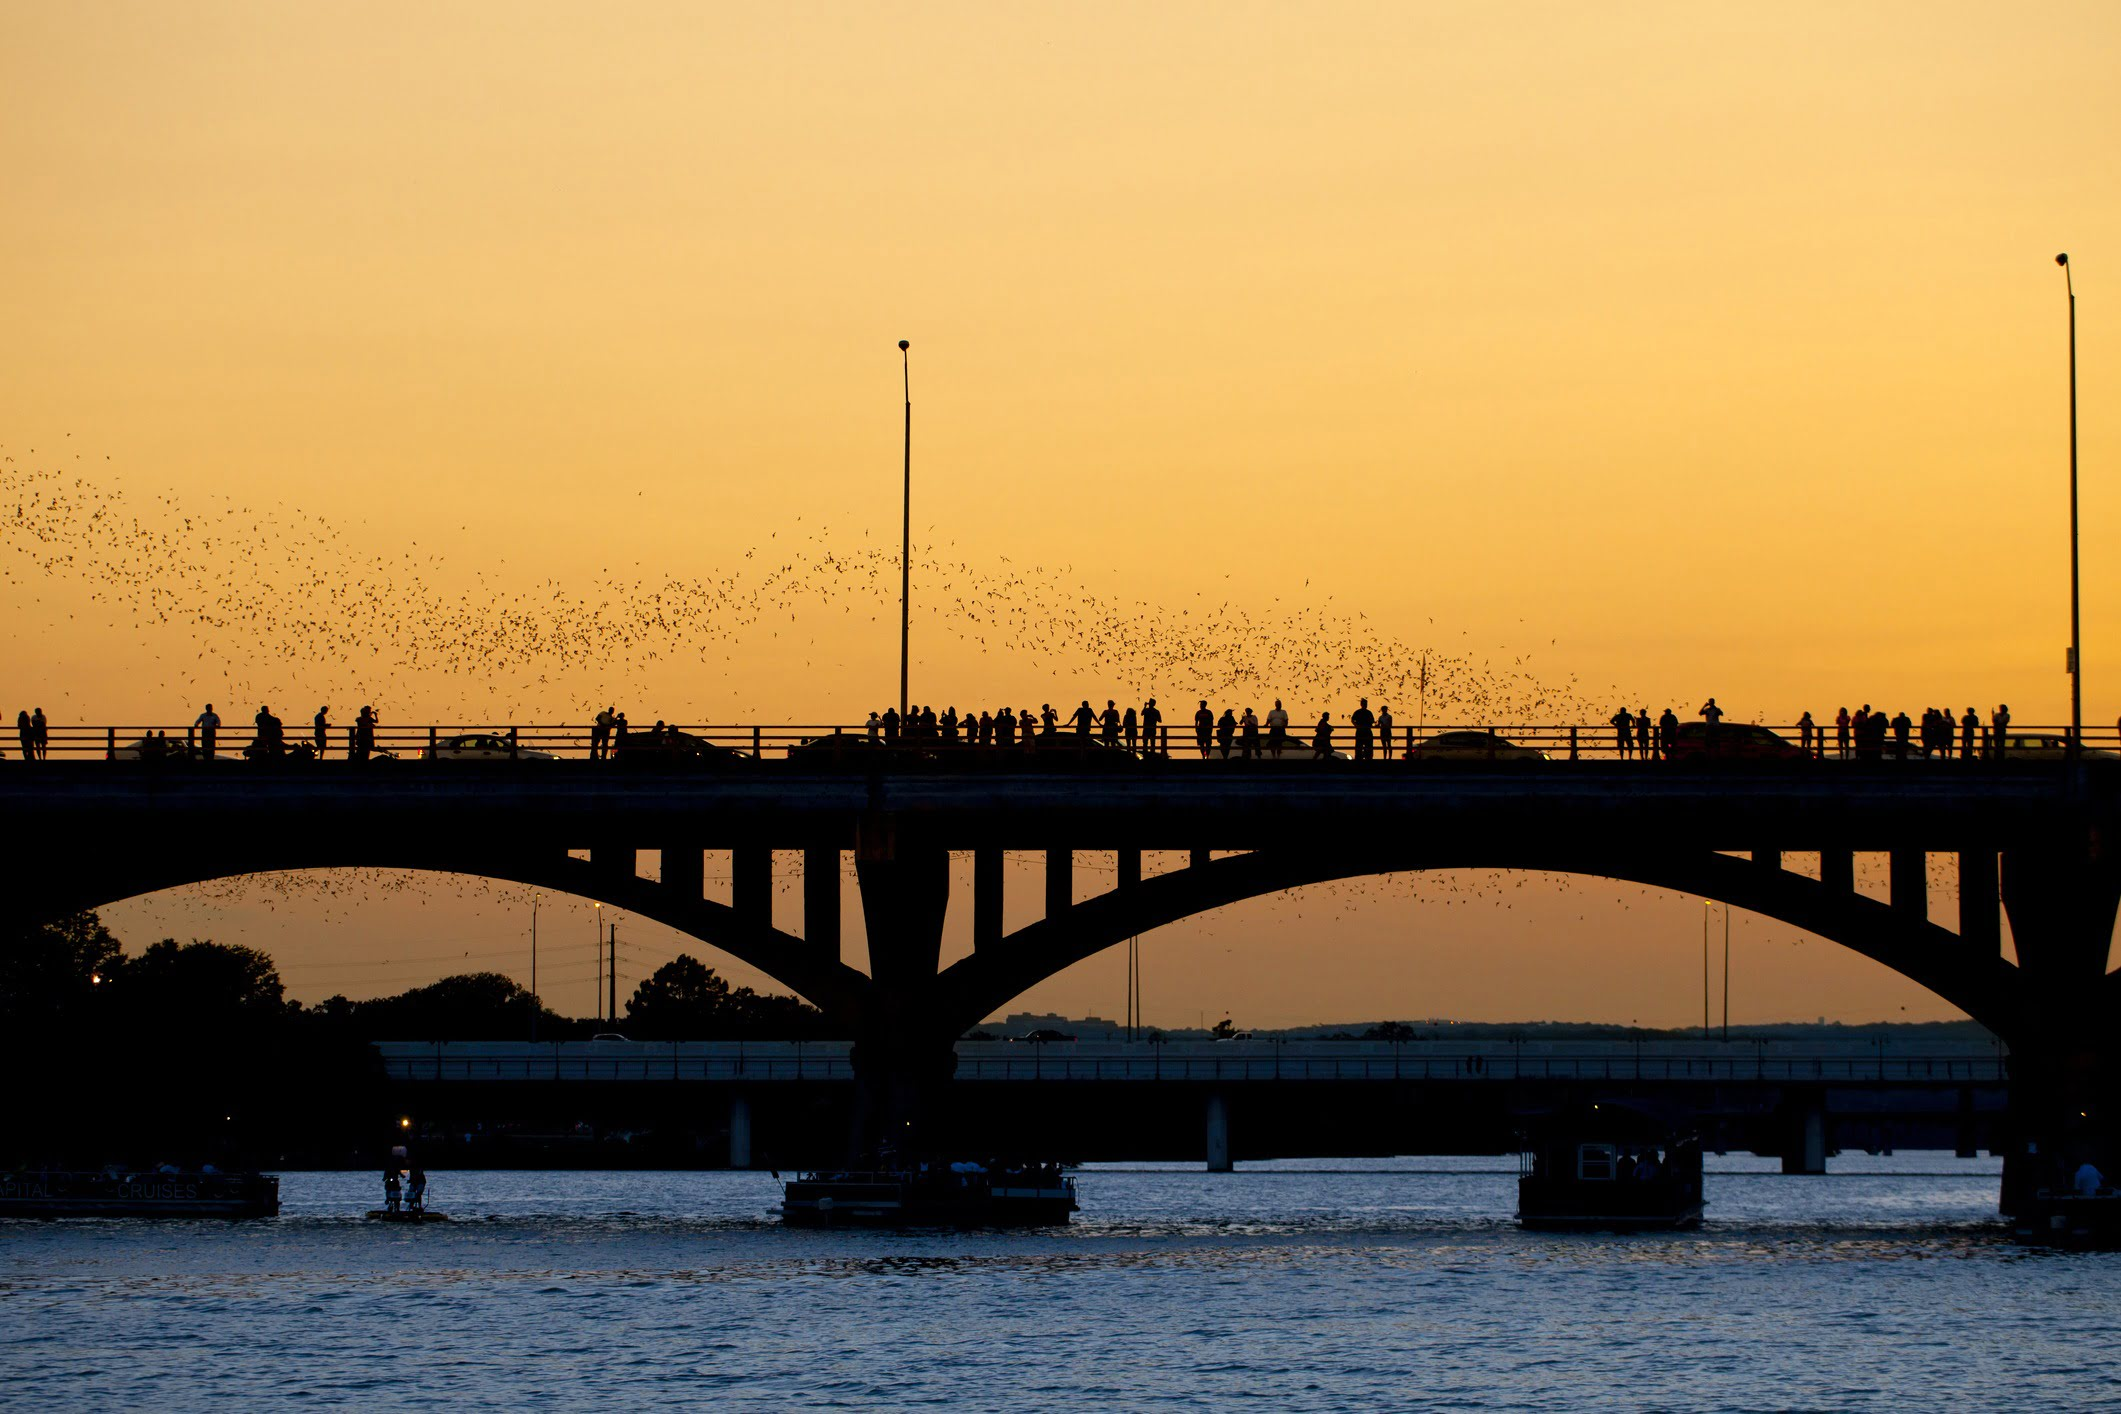 People watching bat leaving the Congress Ave bridge at sunset in Austin, Texas.